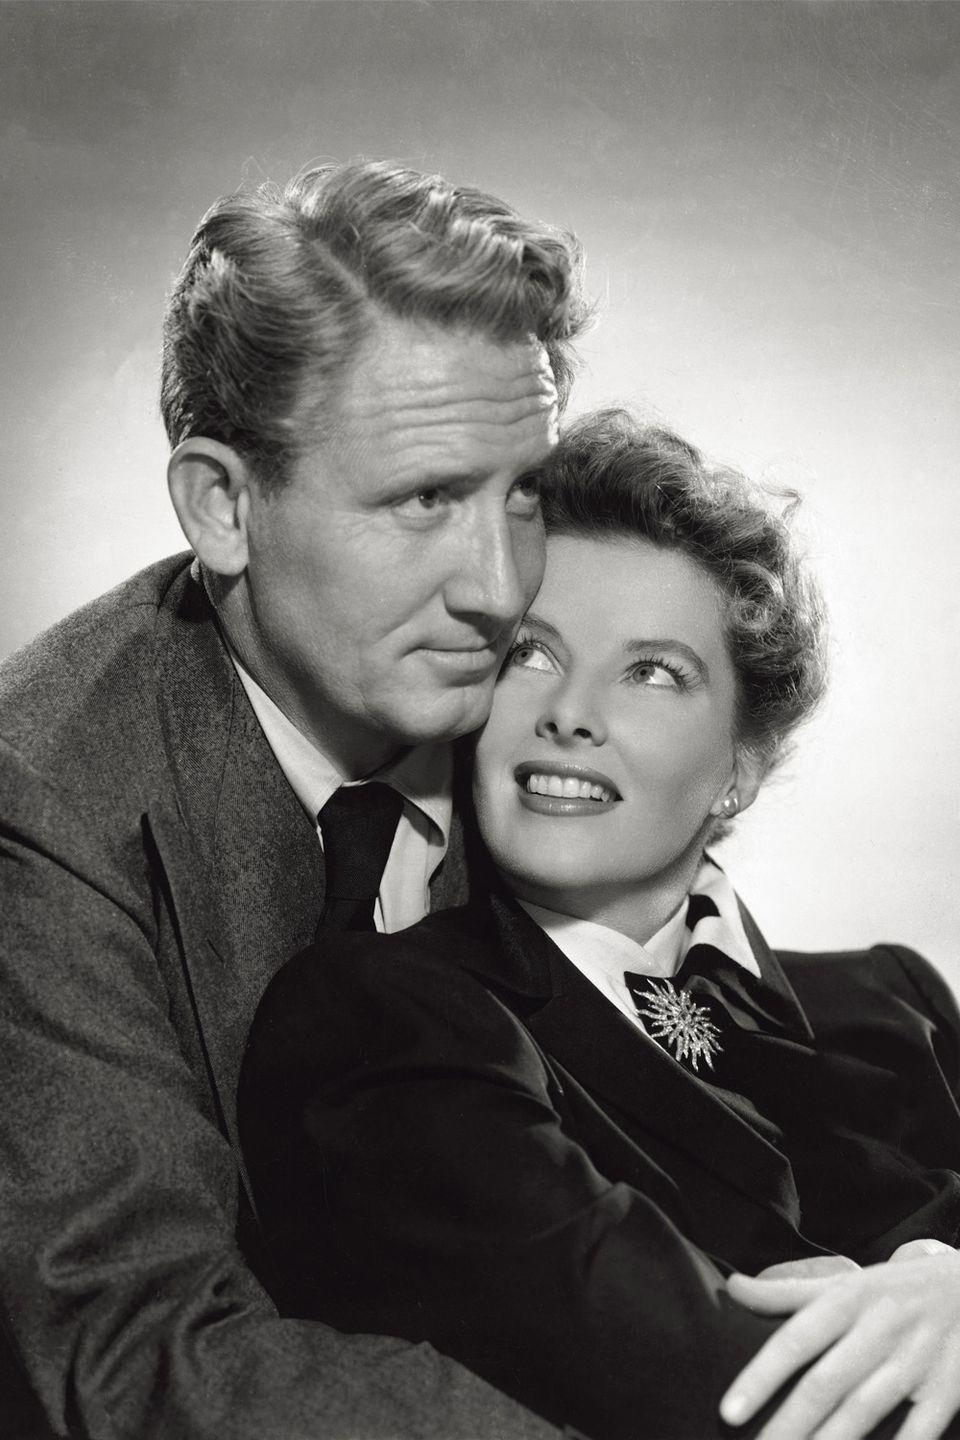 "<p>During their <a href=""https://www.vanityfair.com/hollywood/2014/02/katharine-hepburn-spencer-tracy-movie"" rel=""nofollow noopener"" target=""_blank"" data-ylk=""slk:infamous 25-year love affair"" class=""link rapid-noclick-resp"">infamous 25-year love affair</a>, Tracy remained married to his wife Louise. The couple co-starred in nine movies together, but always lived separately. Only after Tracy's wife passed away did Hepburn come forward about their relationship. </p>"